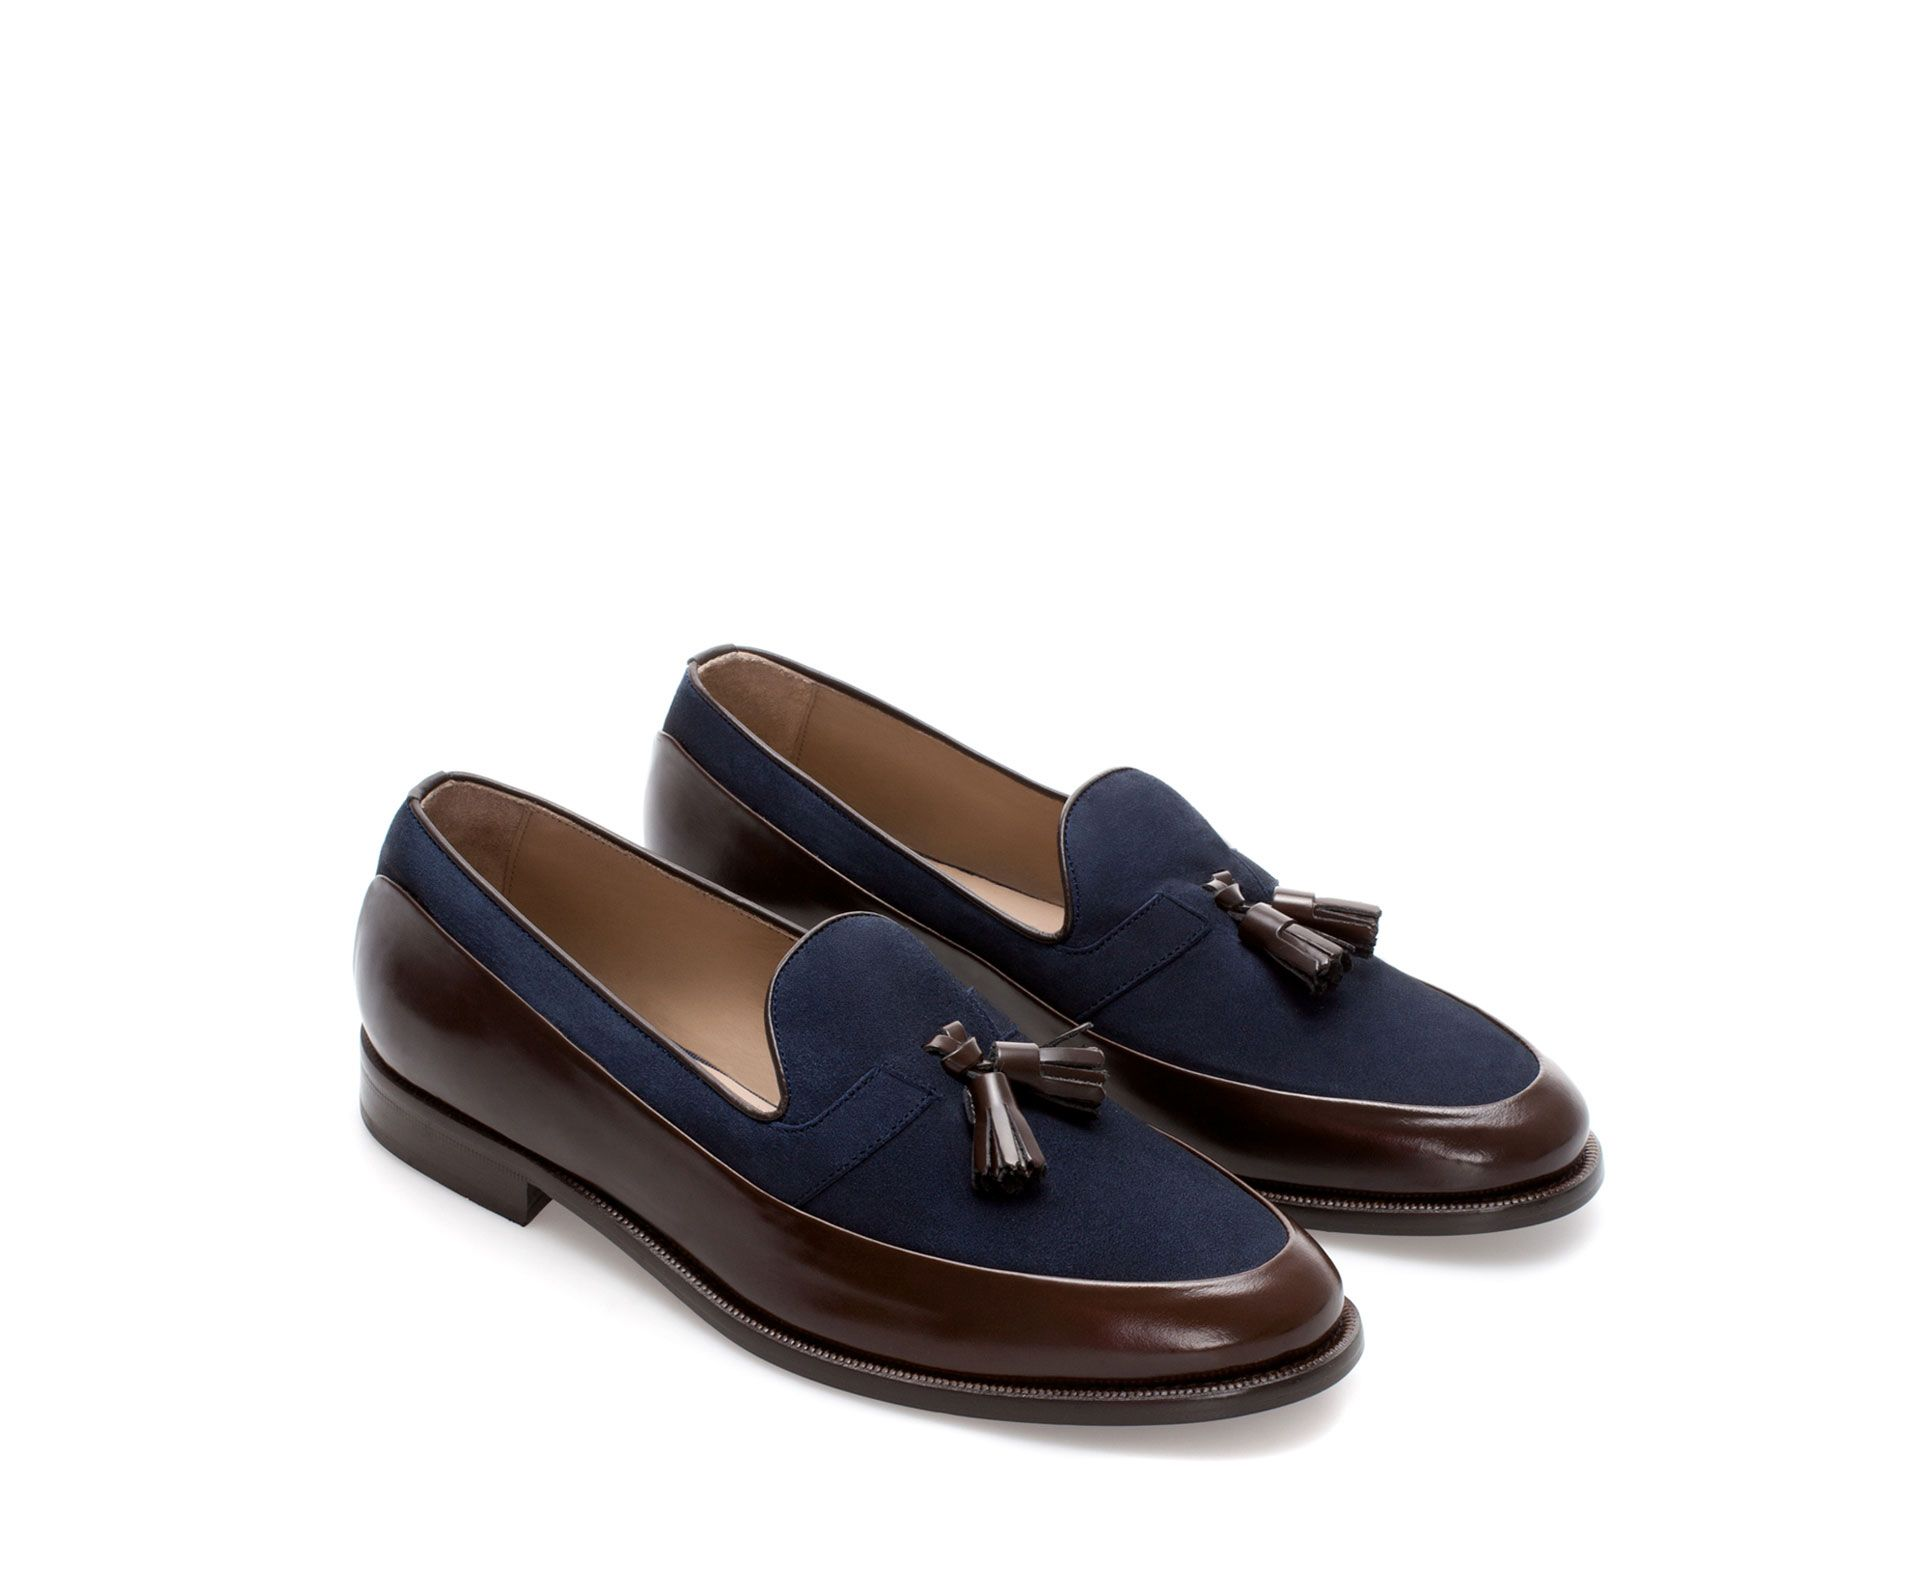 COMBINATION MOCCASIN Shoe | ZARA